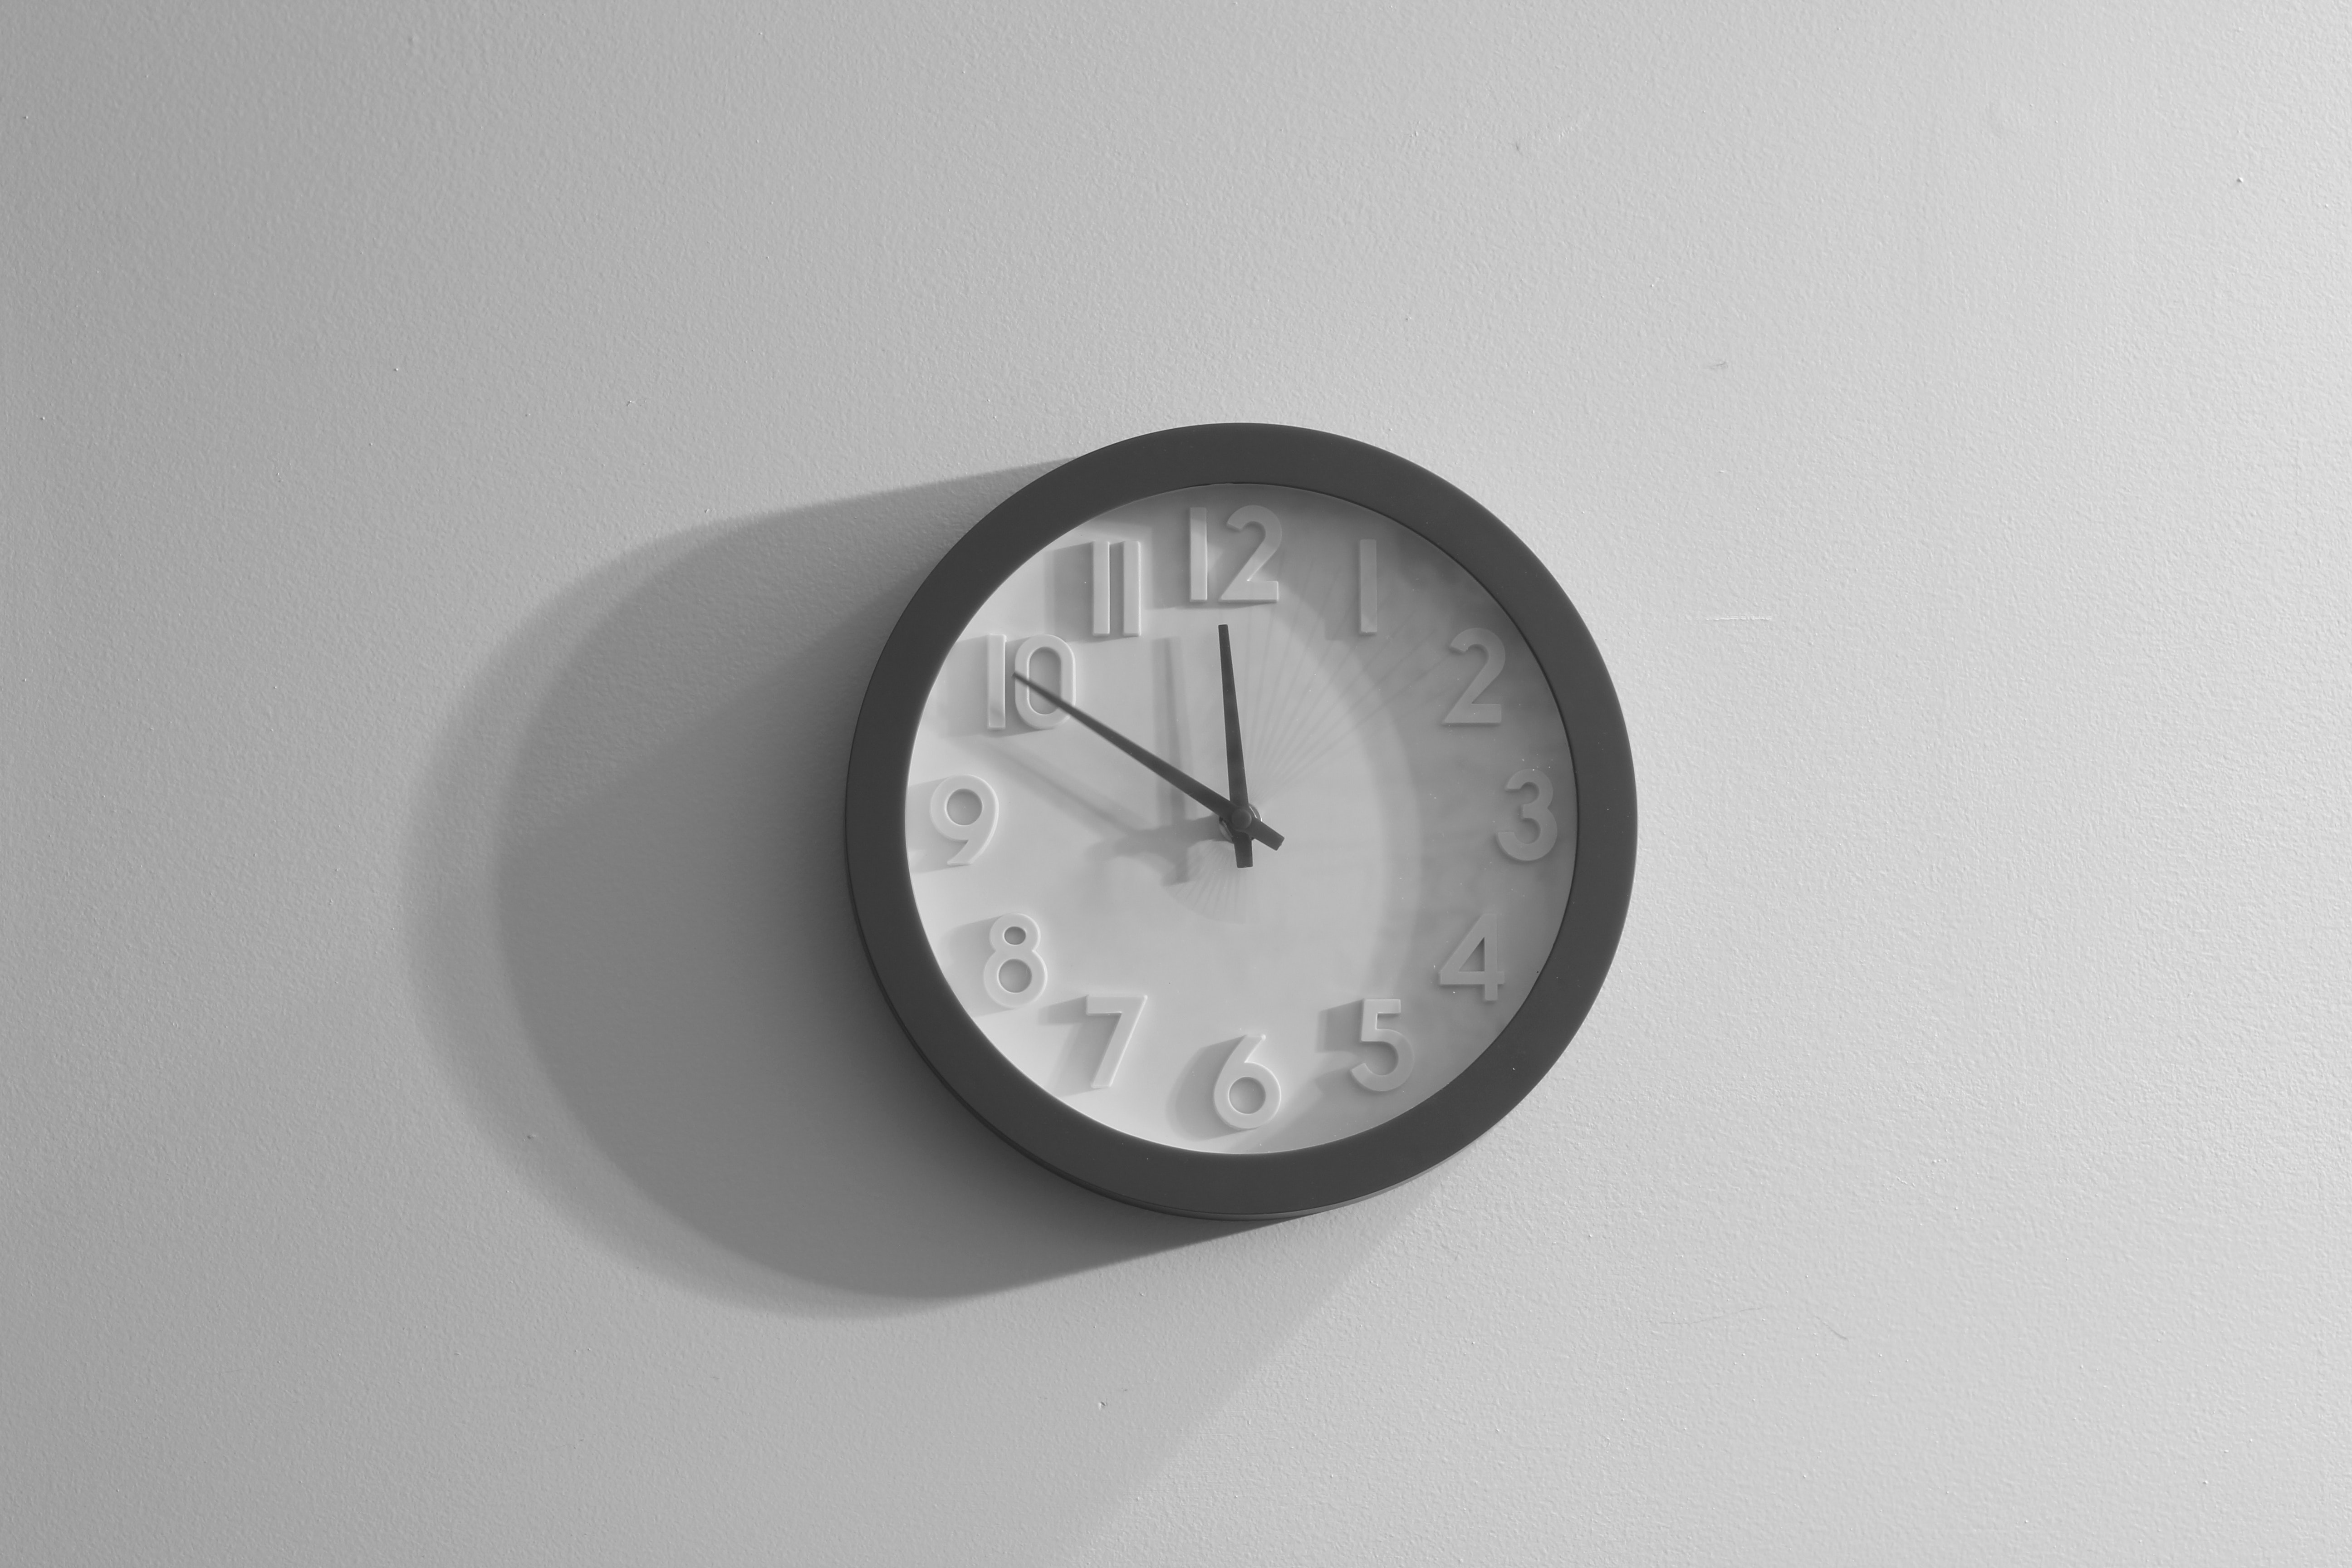 clock-black-and-white-wall-21294